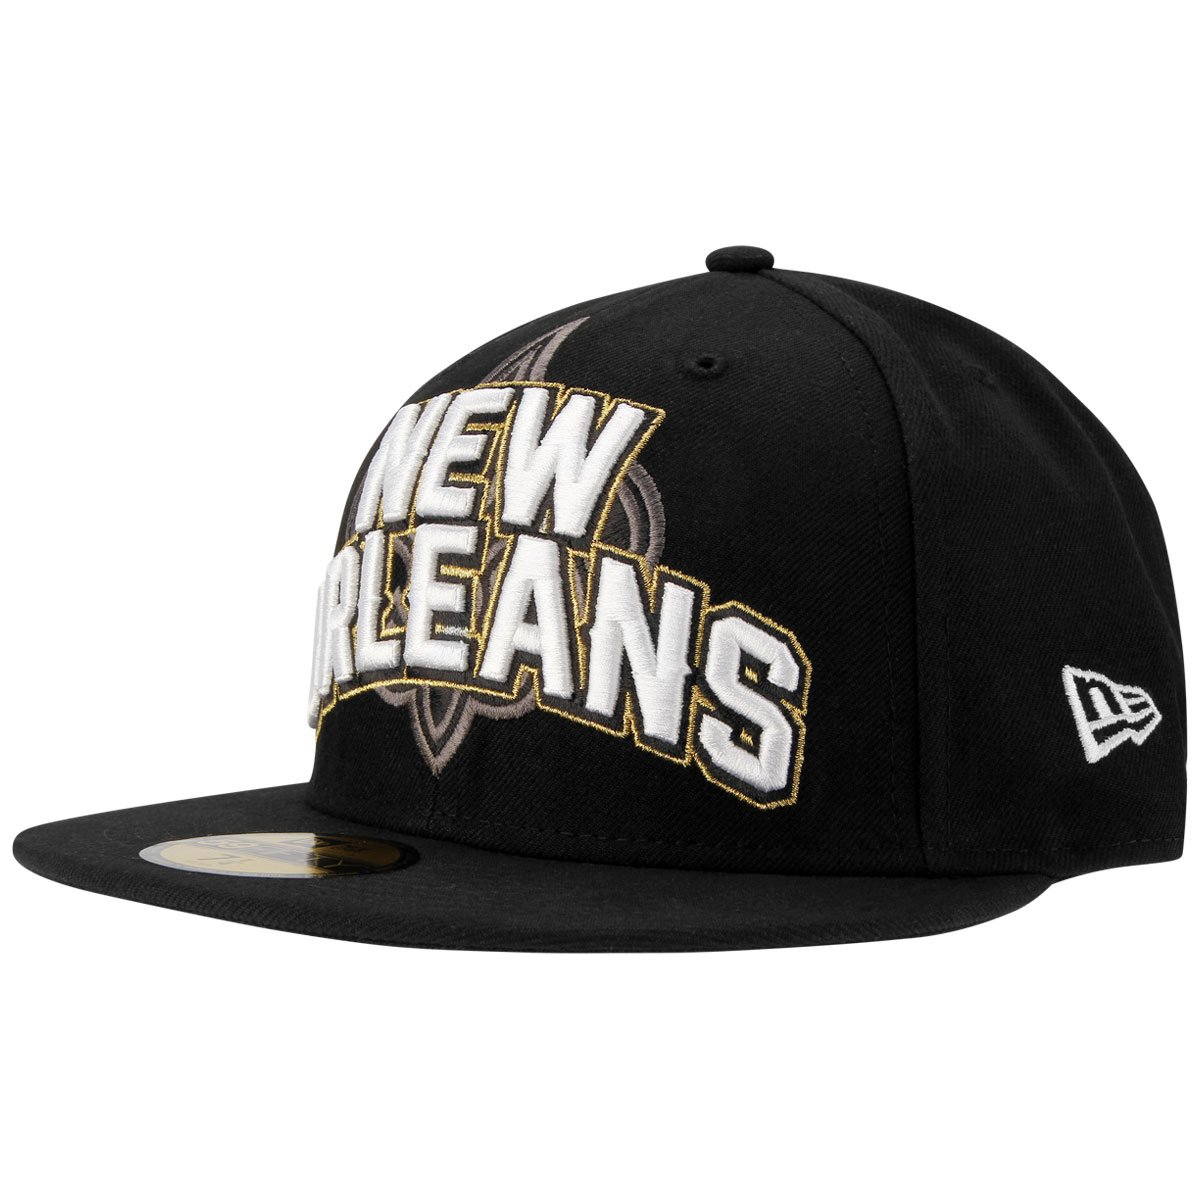 Boné New Era NFL New Orleans Saints Aba Reta 5950 On Field